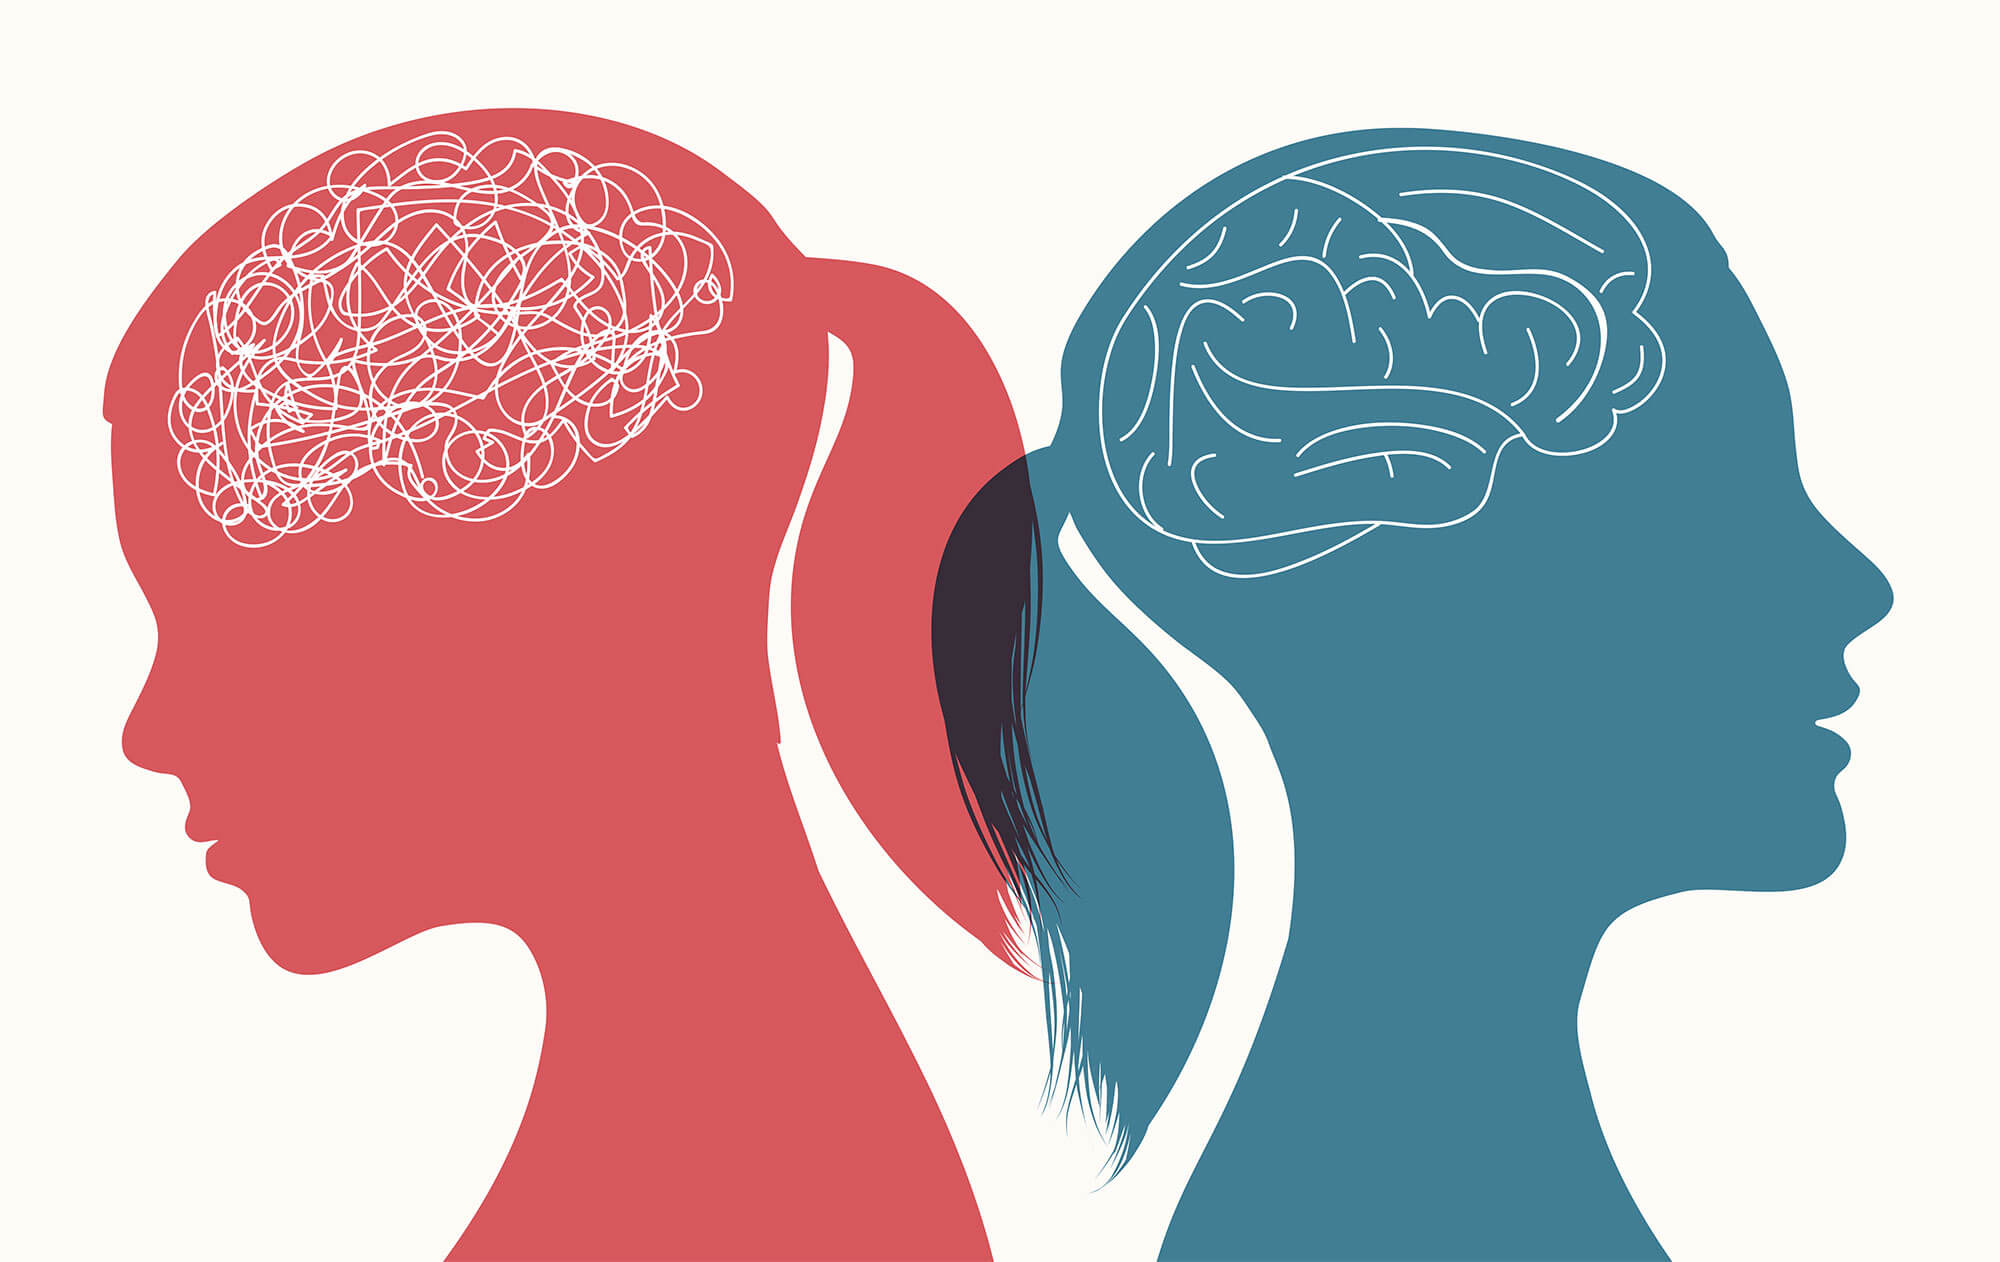 An illustration featuring silhouettes of two women and their brains; one women's brain is drawn more haphazardly than the other's